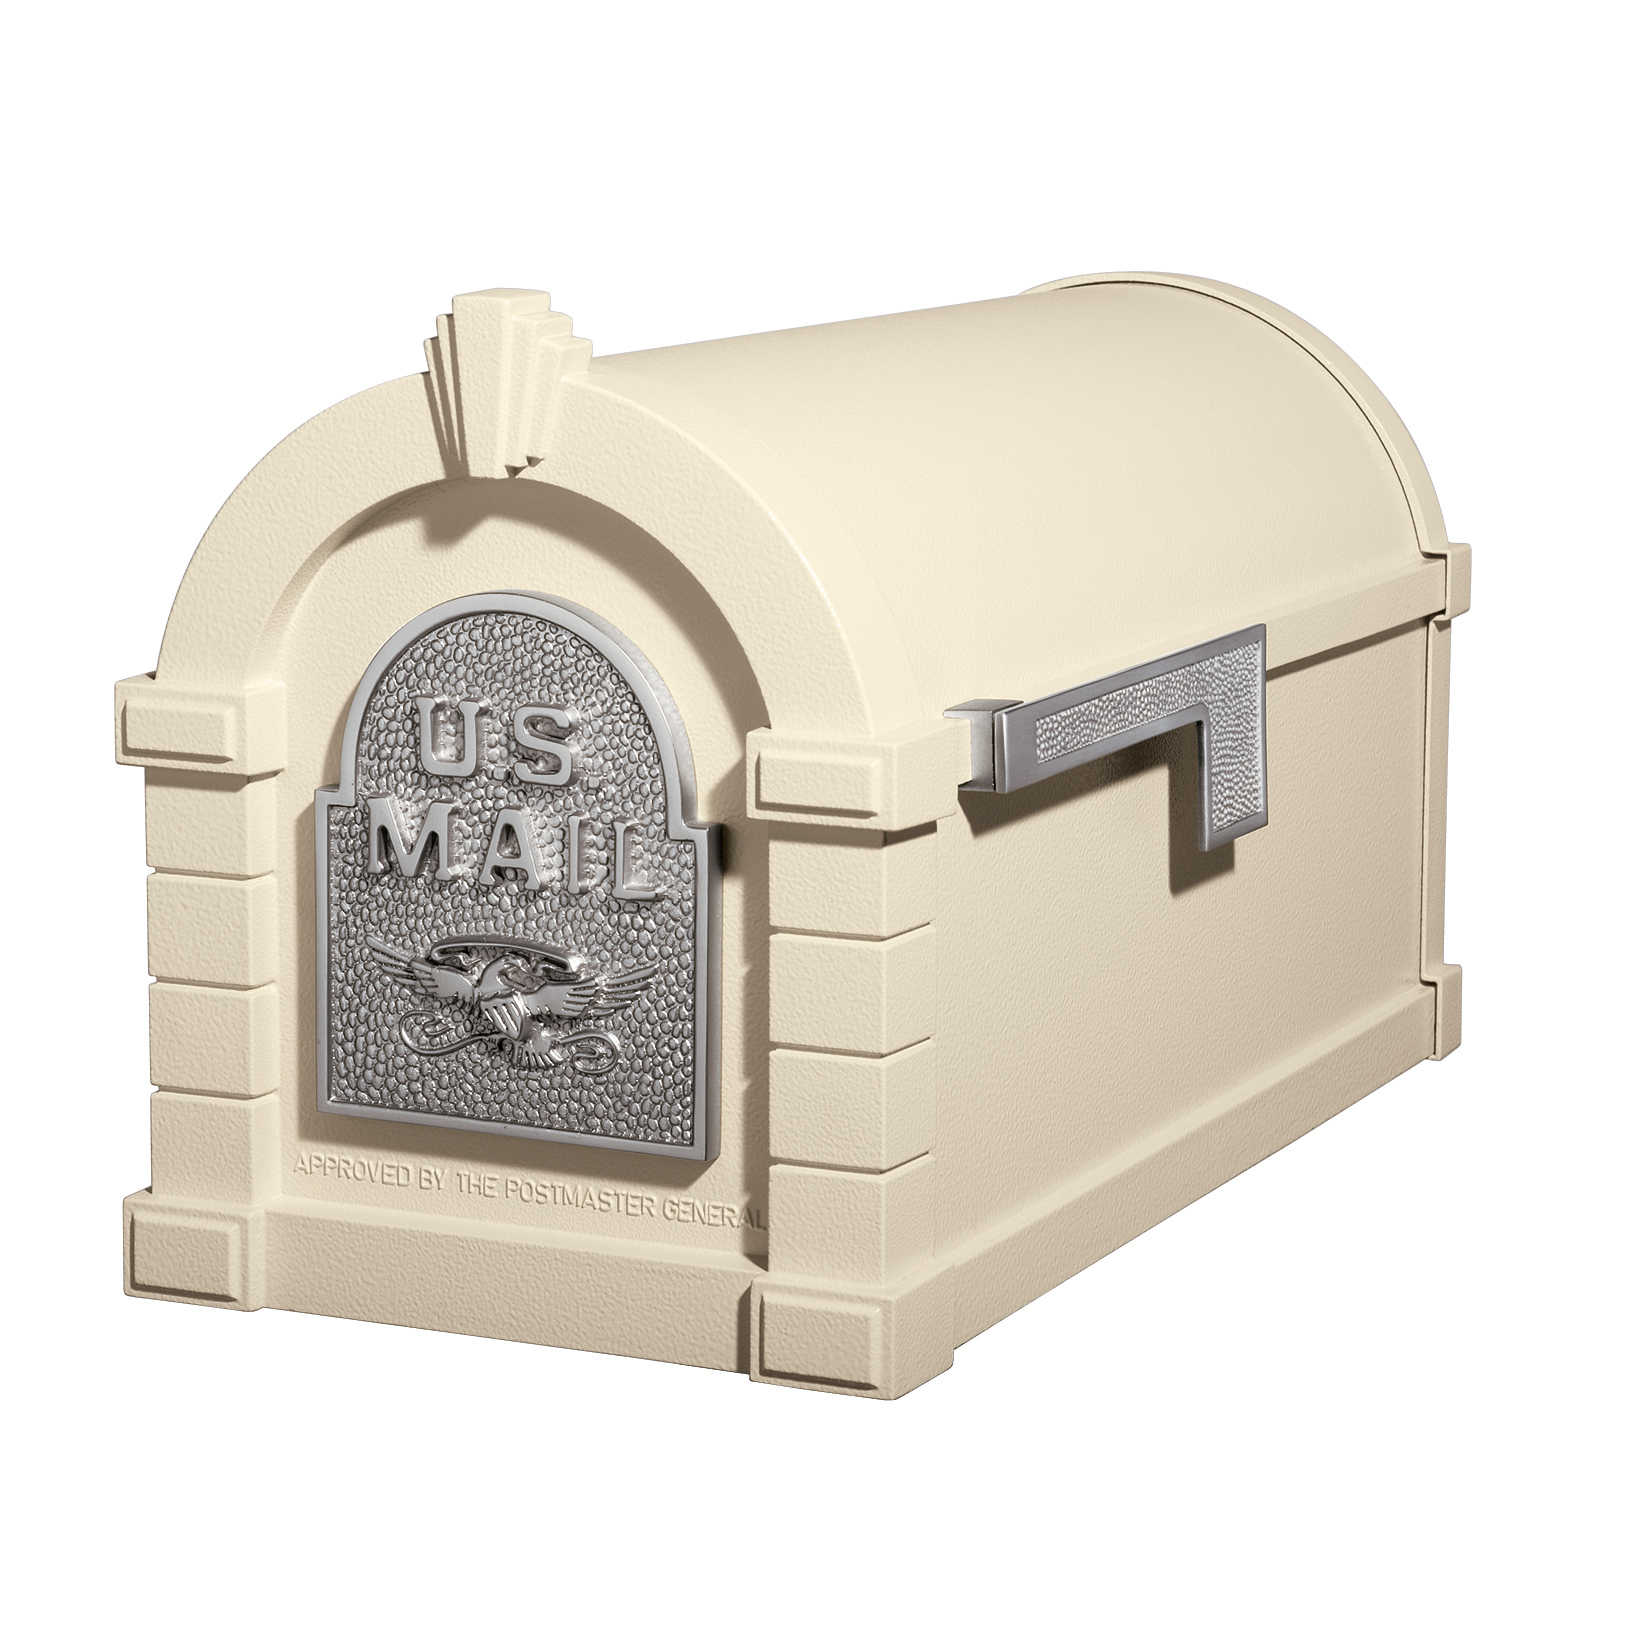 Gaines Eagle Keystone Mailboxes - Almond with Satin Nickel